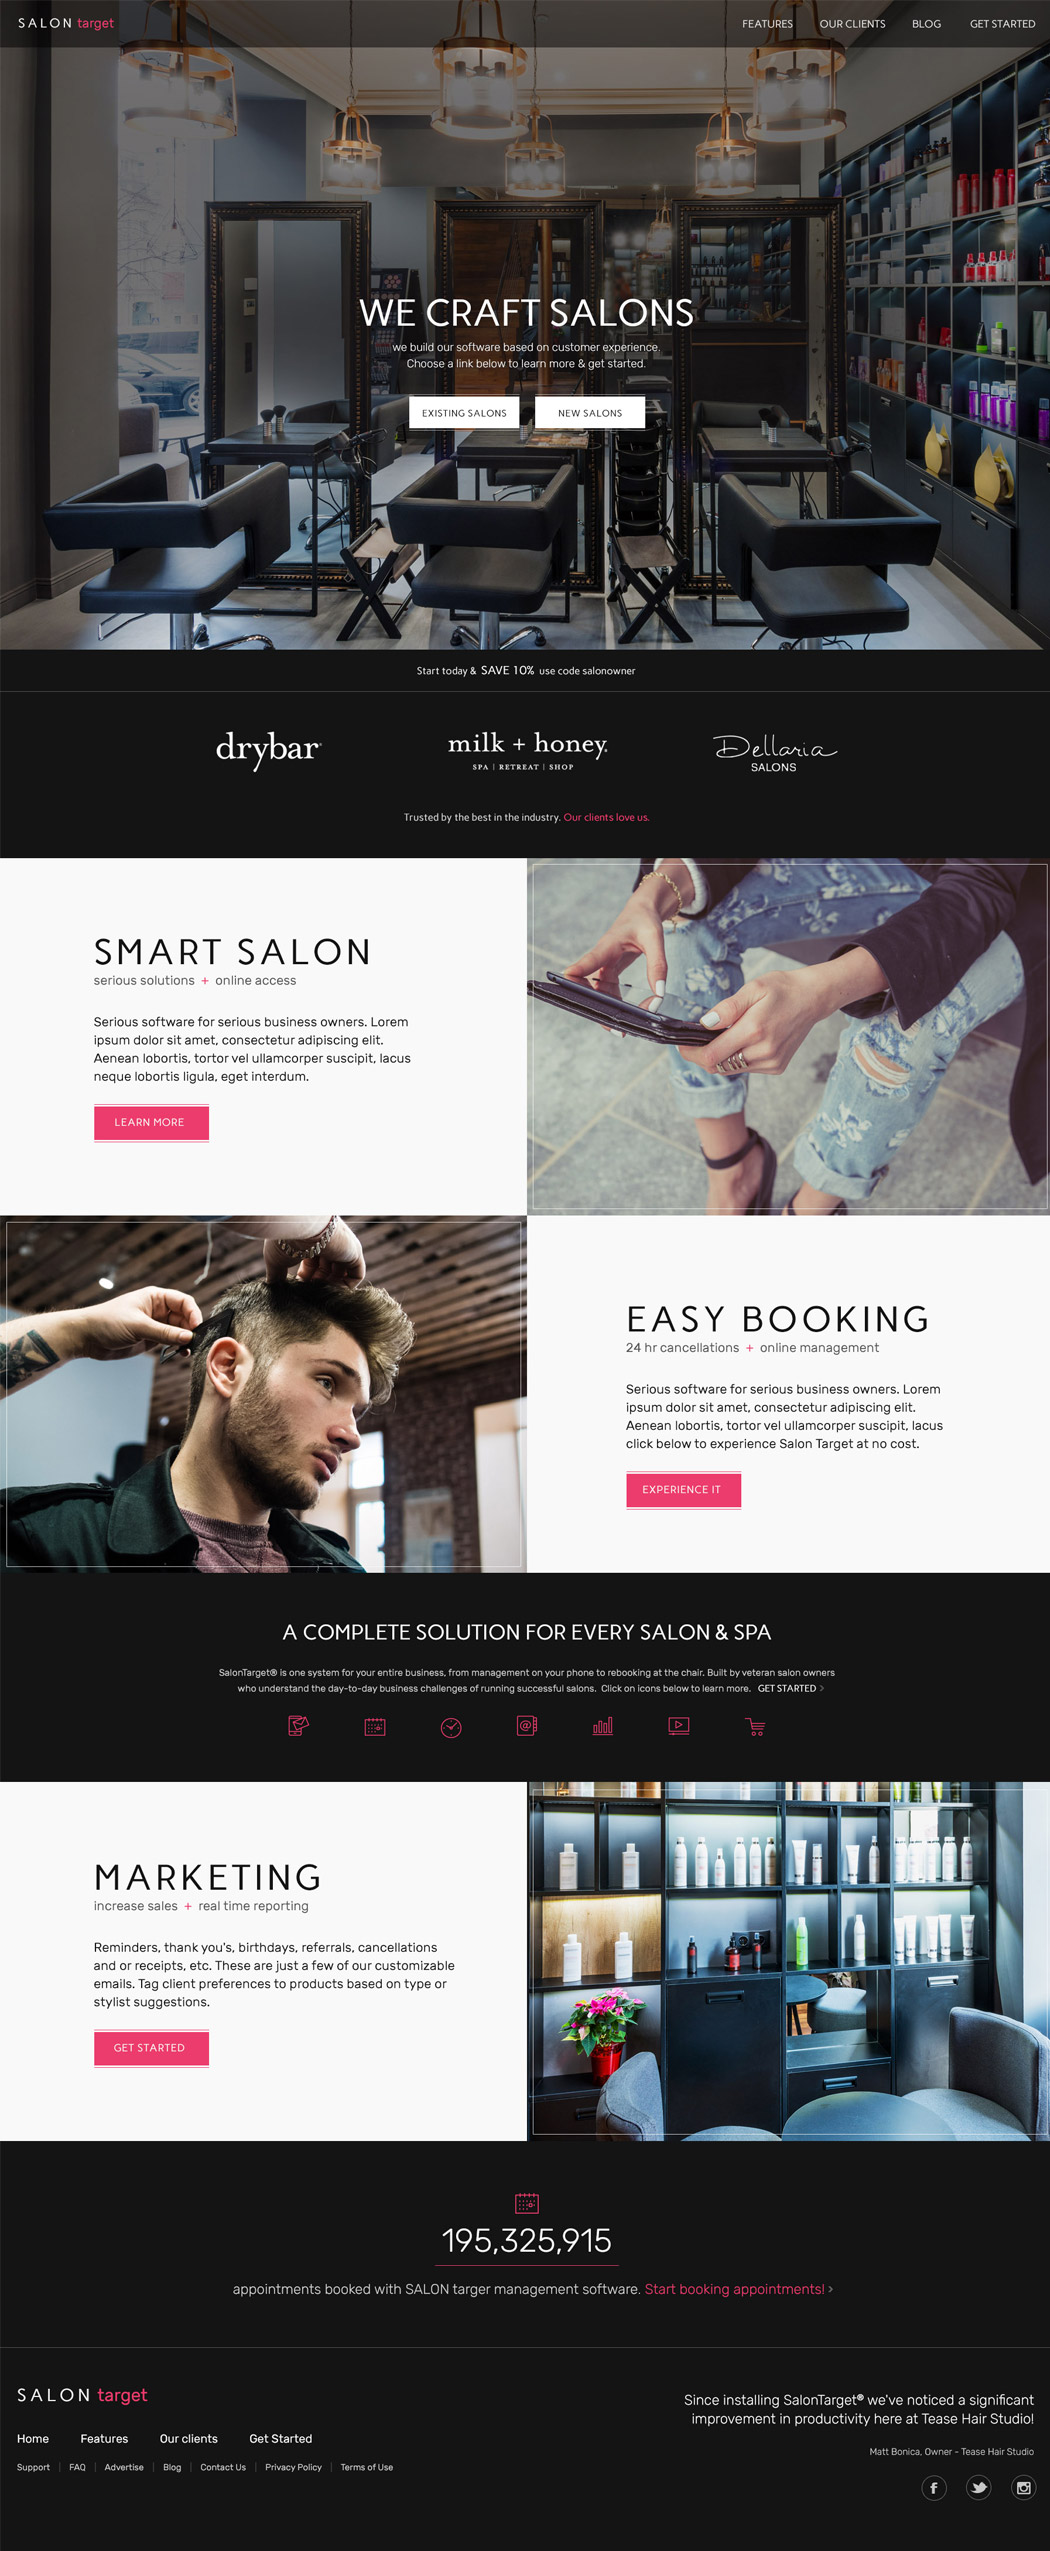 San Diego Website Design - Salon Target